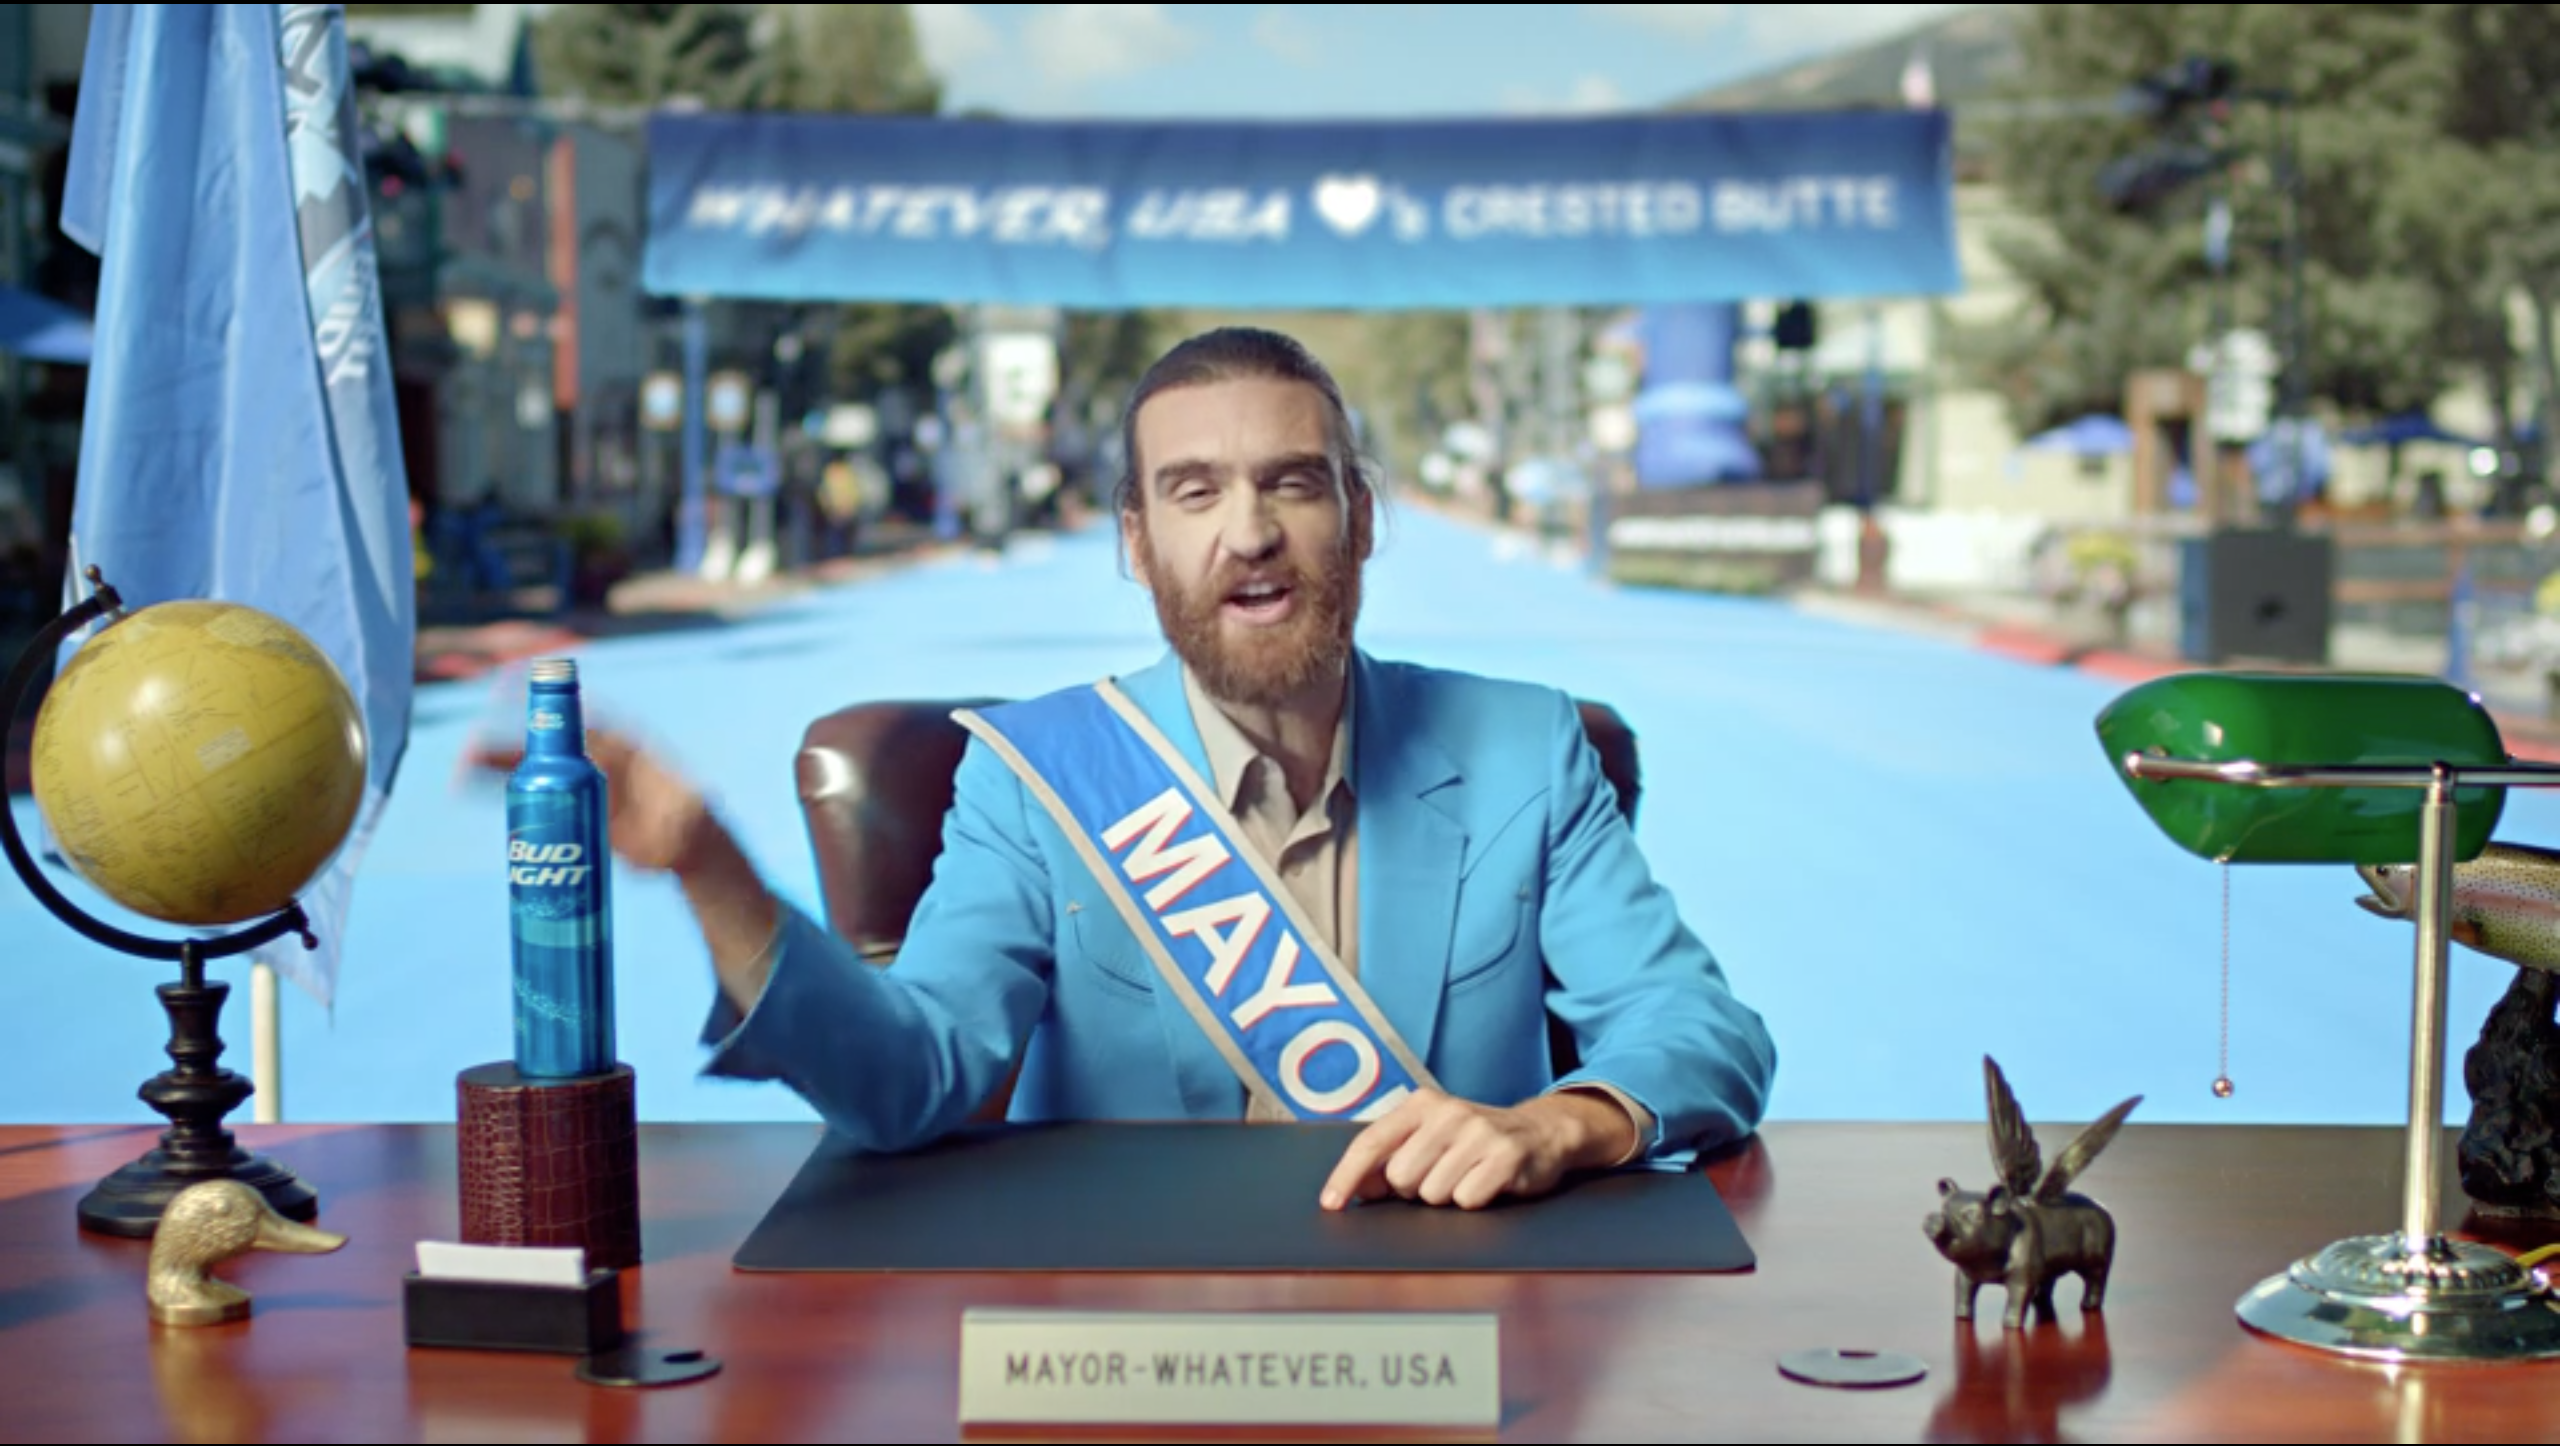 Bud Light | Whatever, USA :: Out of Breath